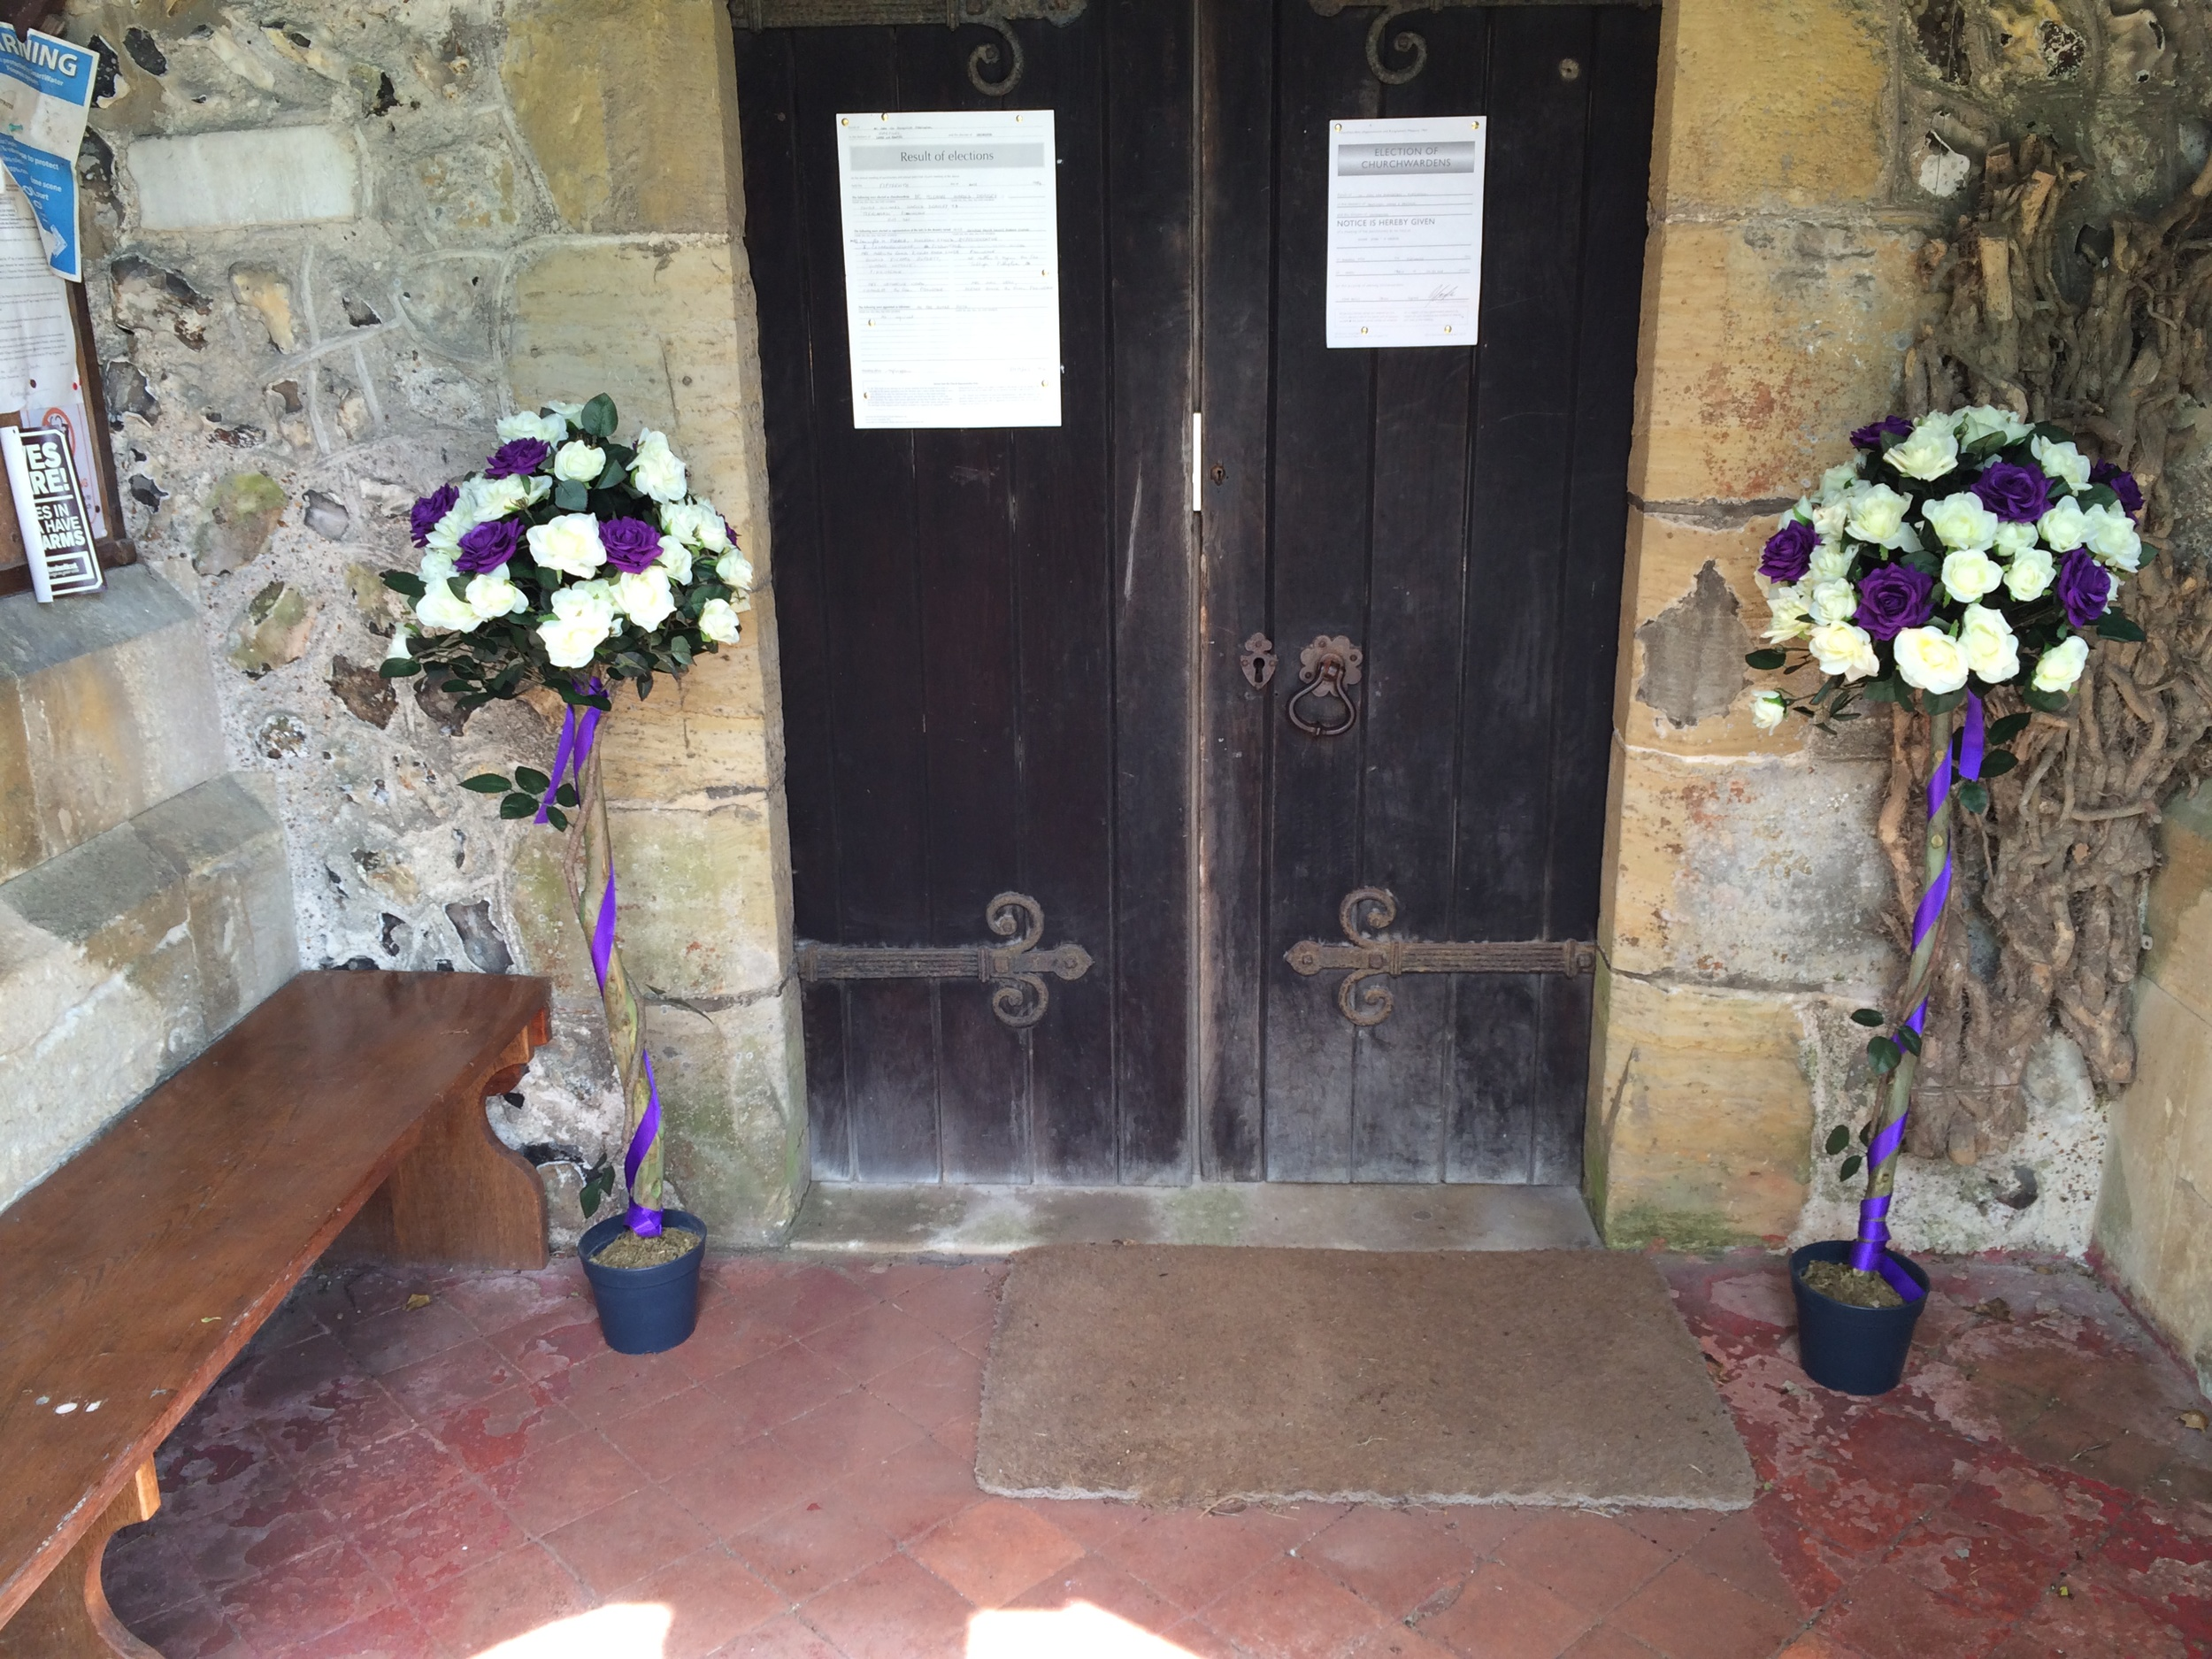 4ft Ivory Ross Bushes With Purple Roses, Either Side The Church Doors